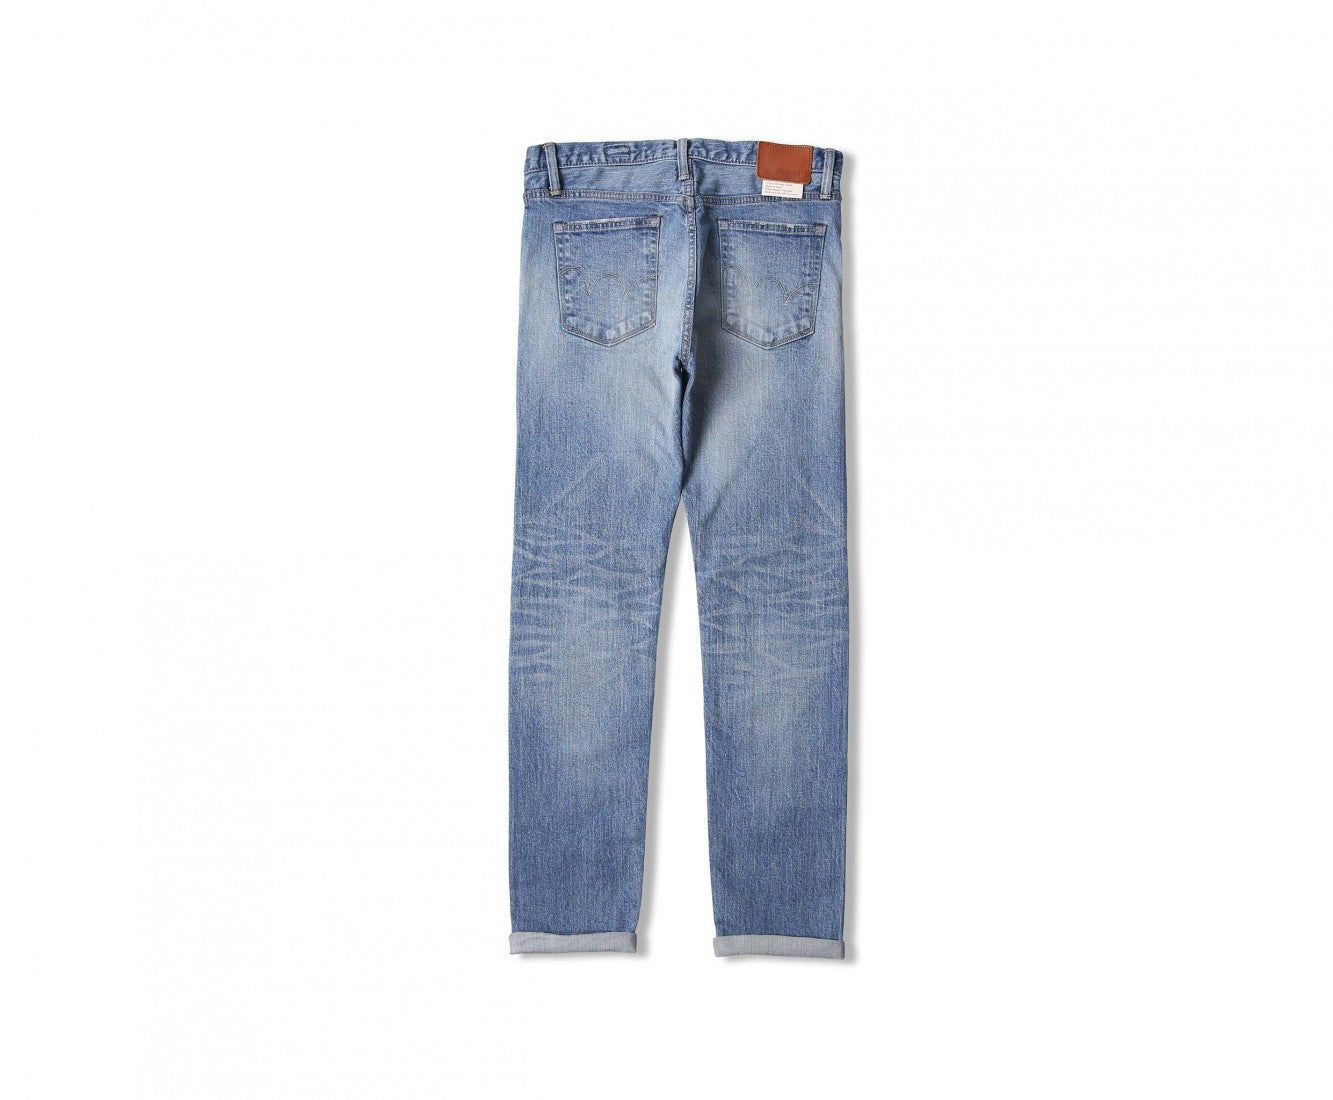 "Edwin Europe ED-80 Slim Tapered Jeans ""Nihon Menpu Japan Selvage Stretch Fabric"" - Light Used-Denim-Navy Selected Shop"